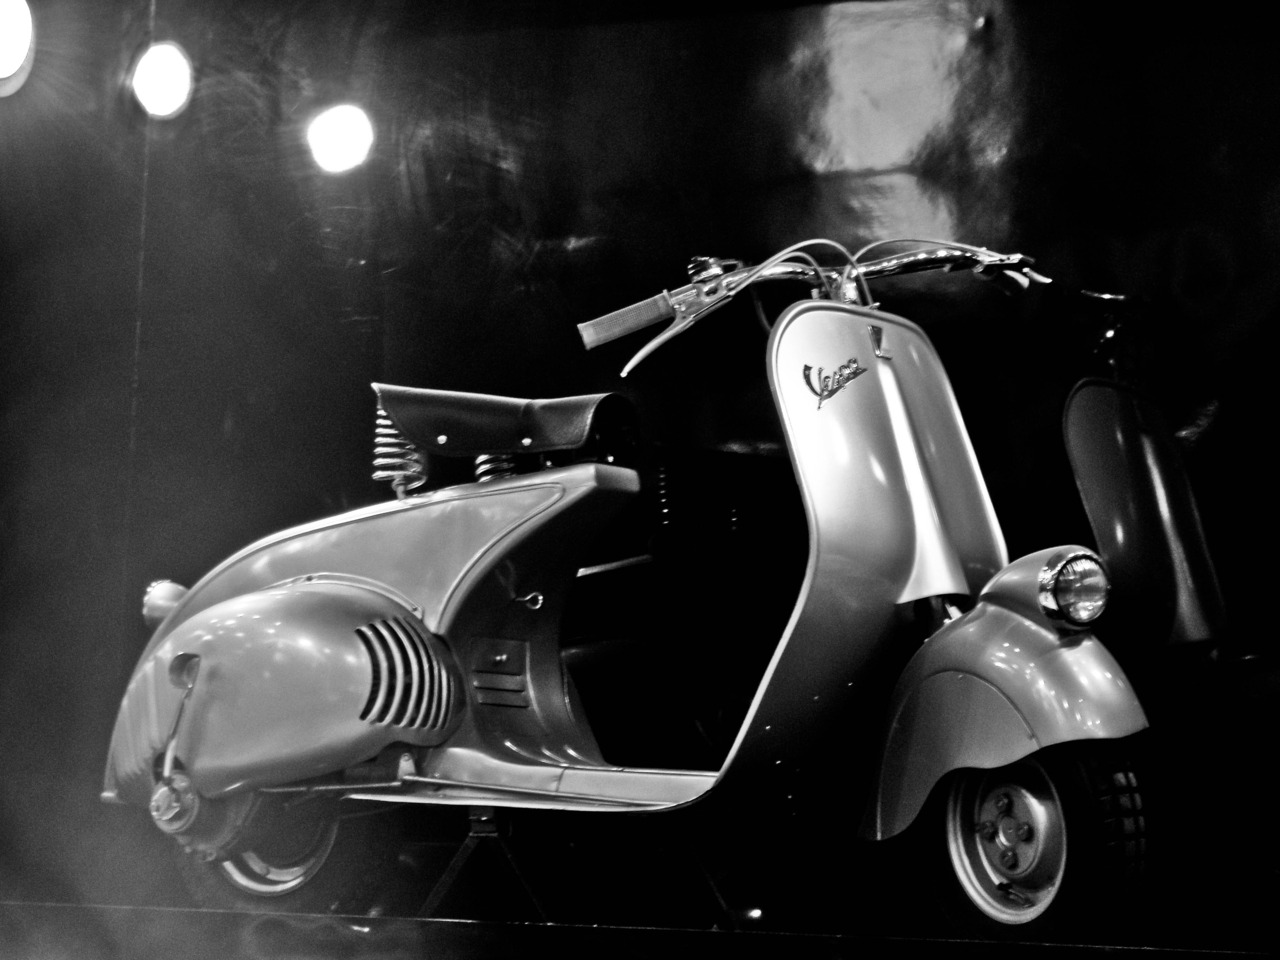 Vespa - Wikipedia, the free encyclopedia